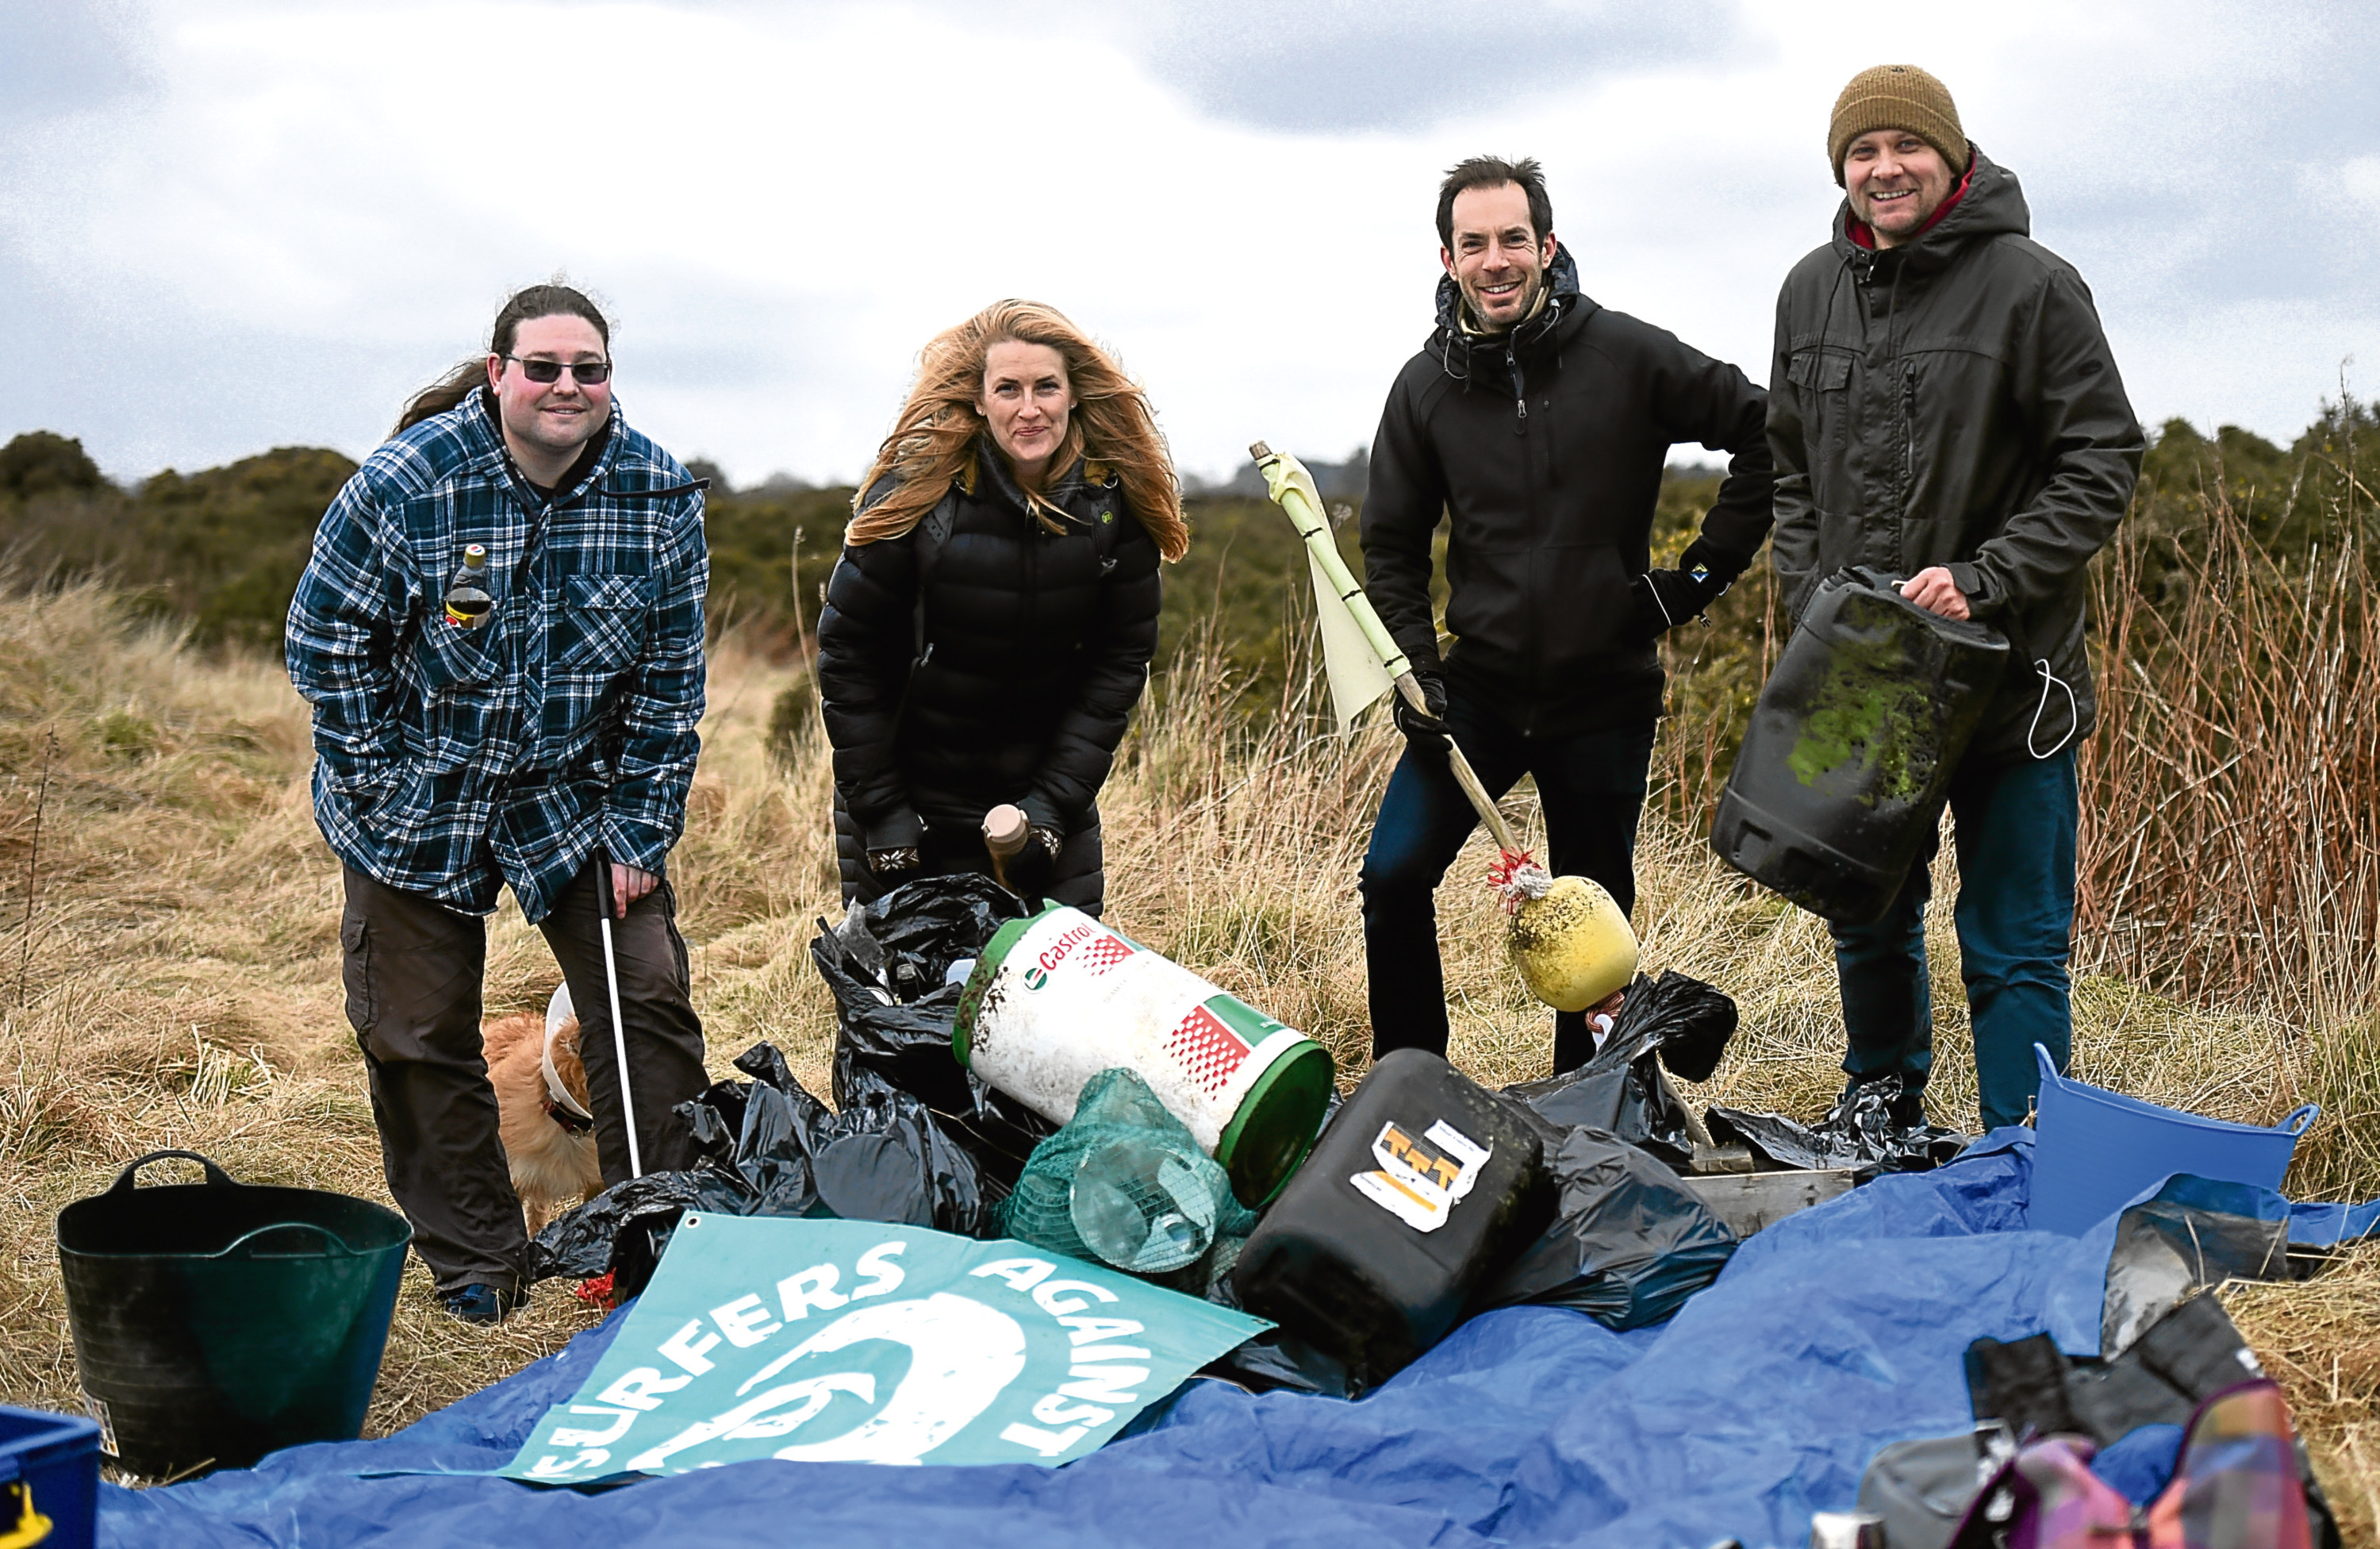 Beach Clean- Newburgh Beach. Pictured from left, Matthew Pengelly, Volunteer, Jenny Smith, Regional representitive at Surfers Against Sewage, Alex Brown, Volunteer and Andrew Wilkie, Surfer Against Sewage Rep. 25/02/18 Picture by HEATHER FOWLIE